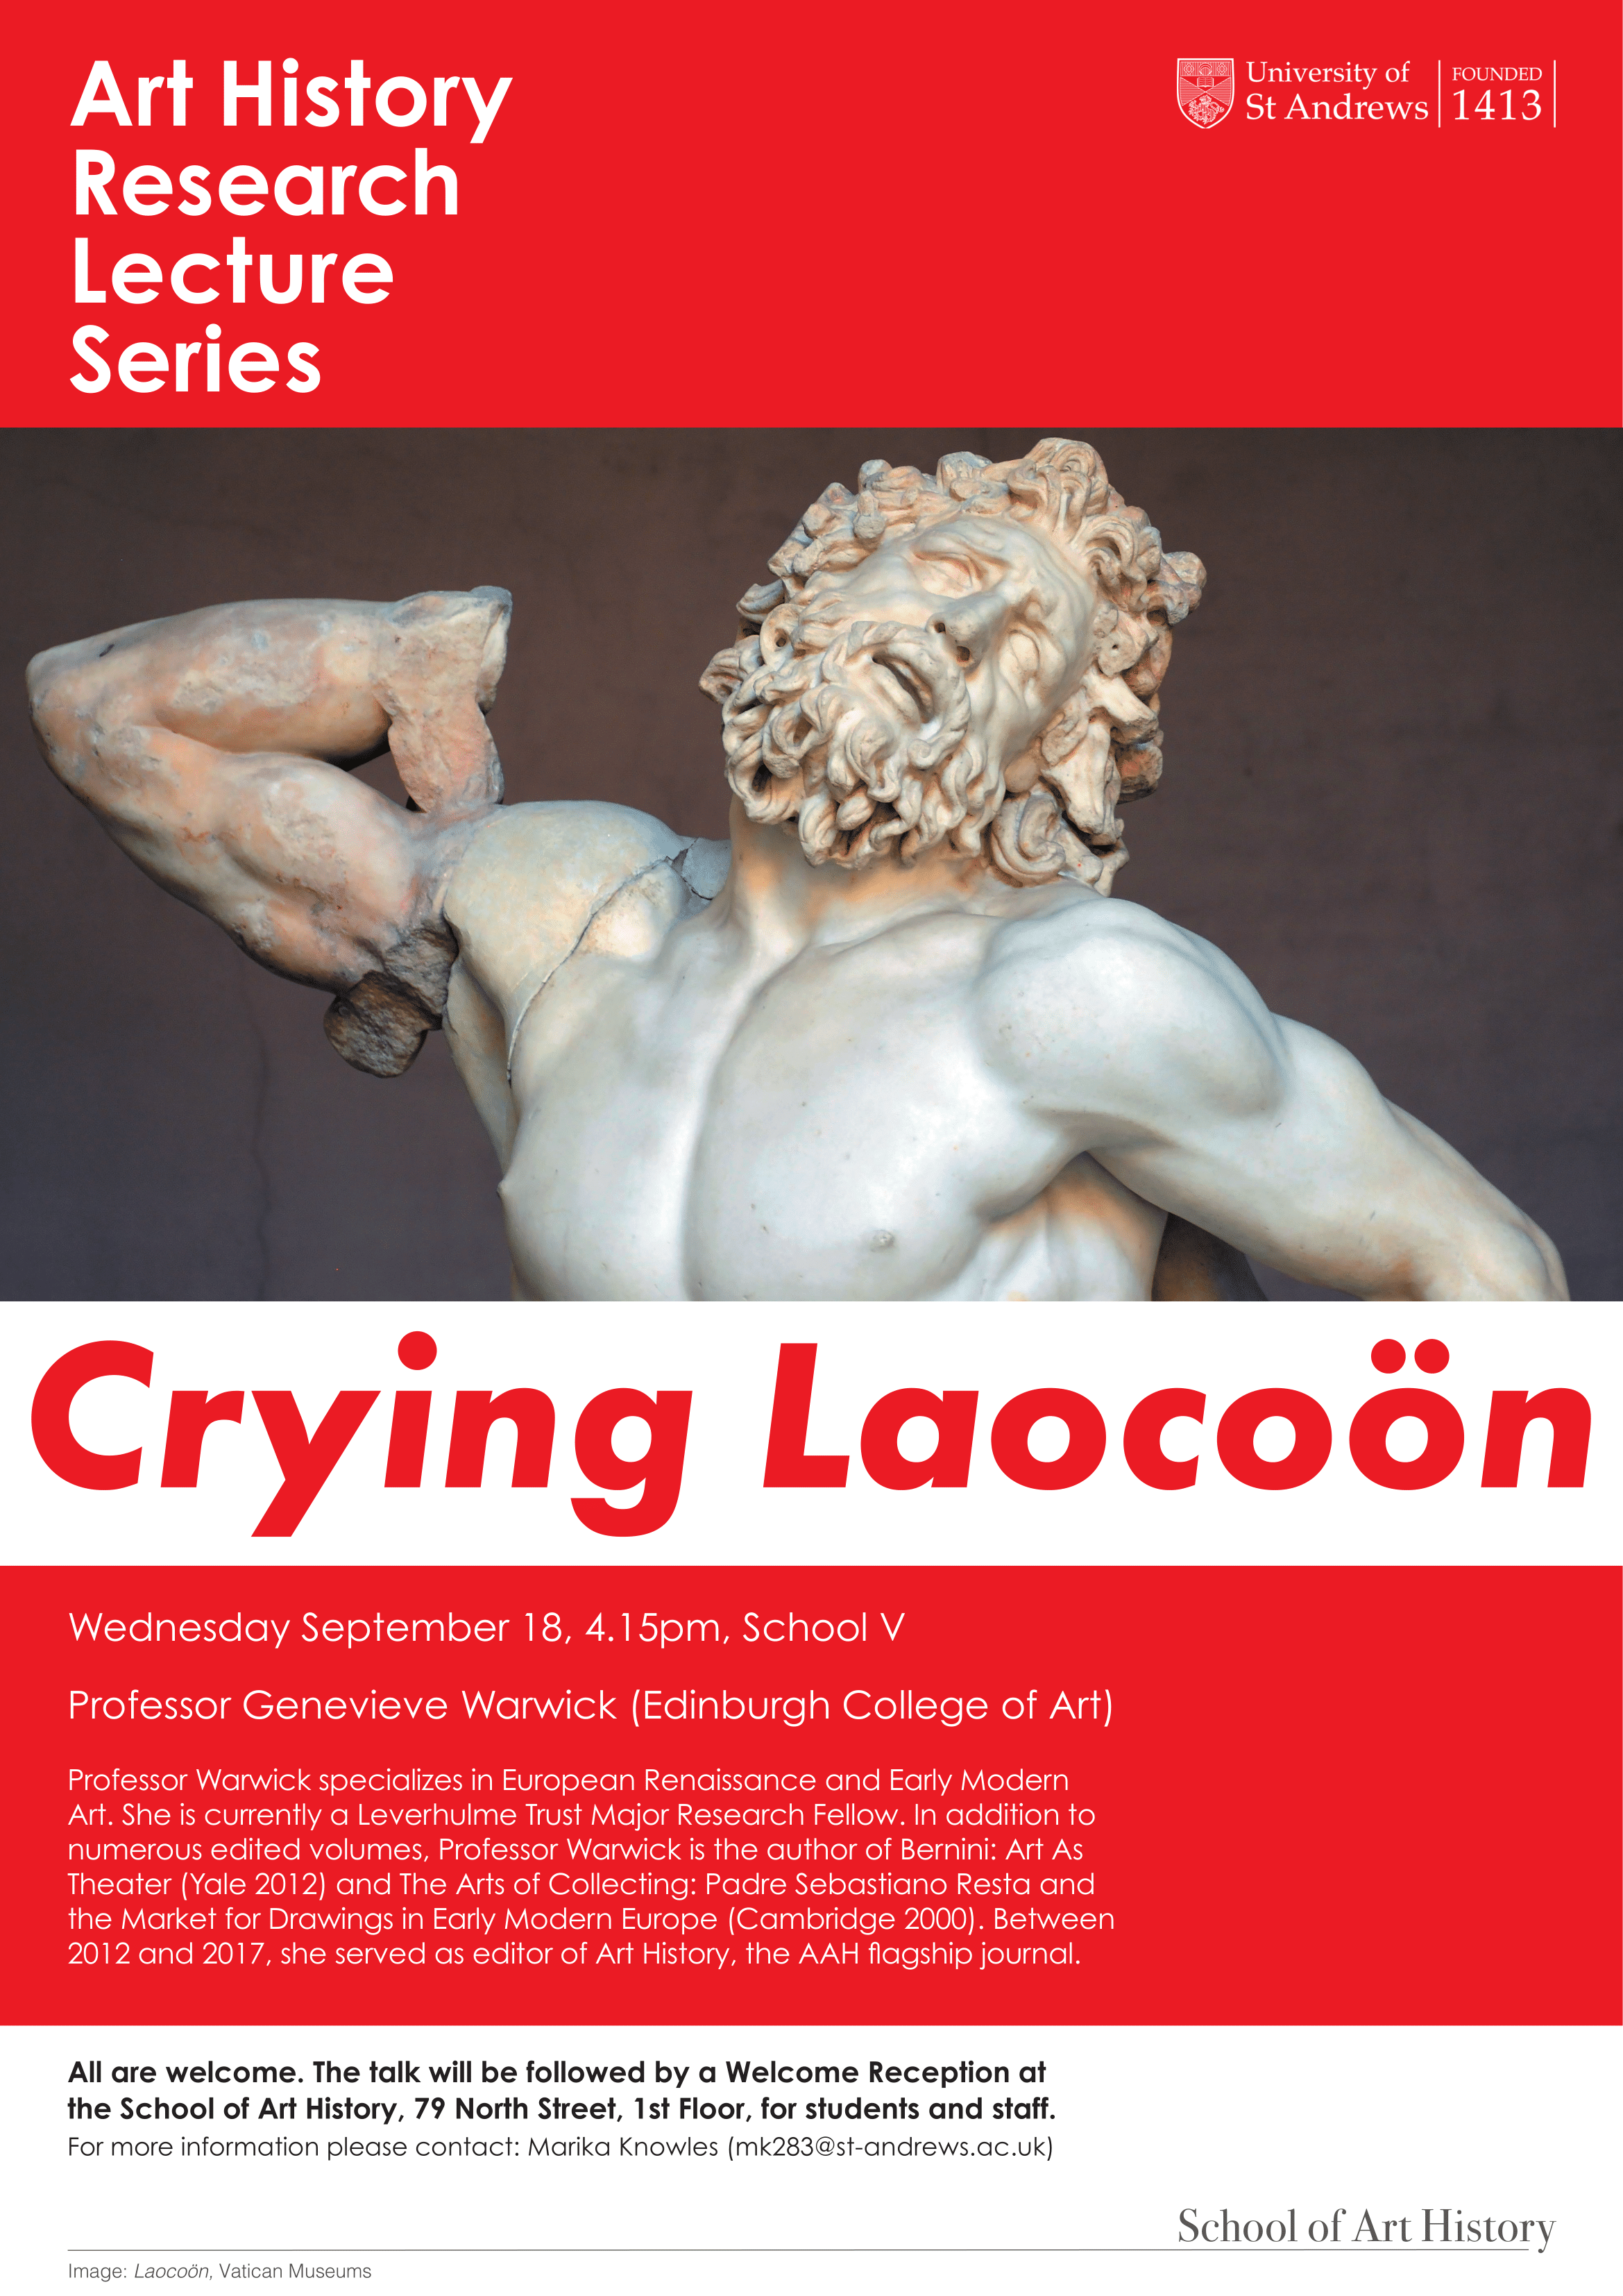 Crying Laocoon talk poster